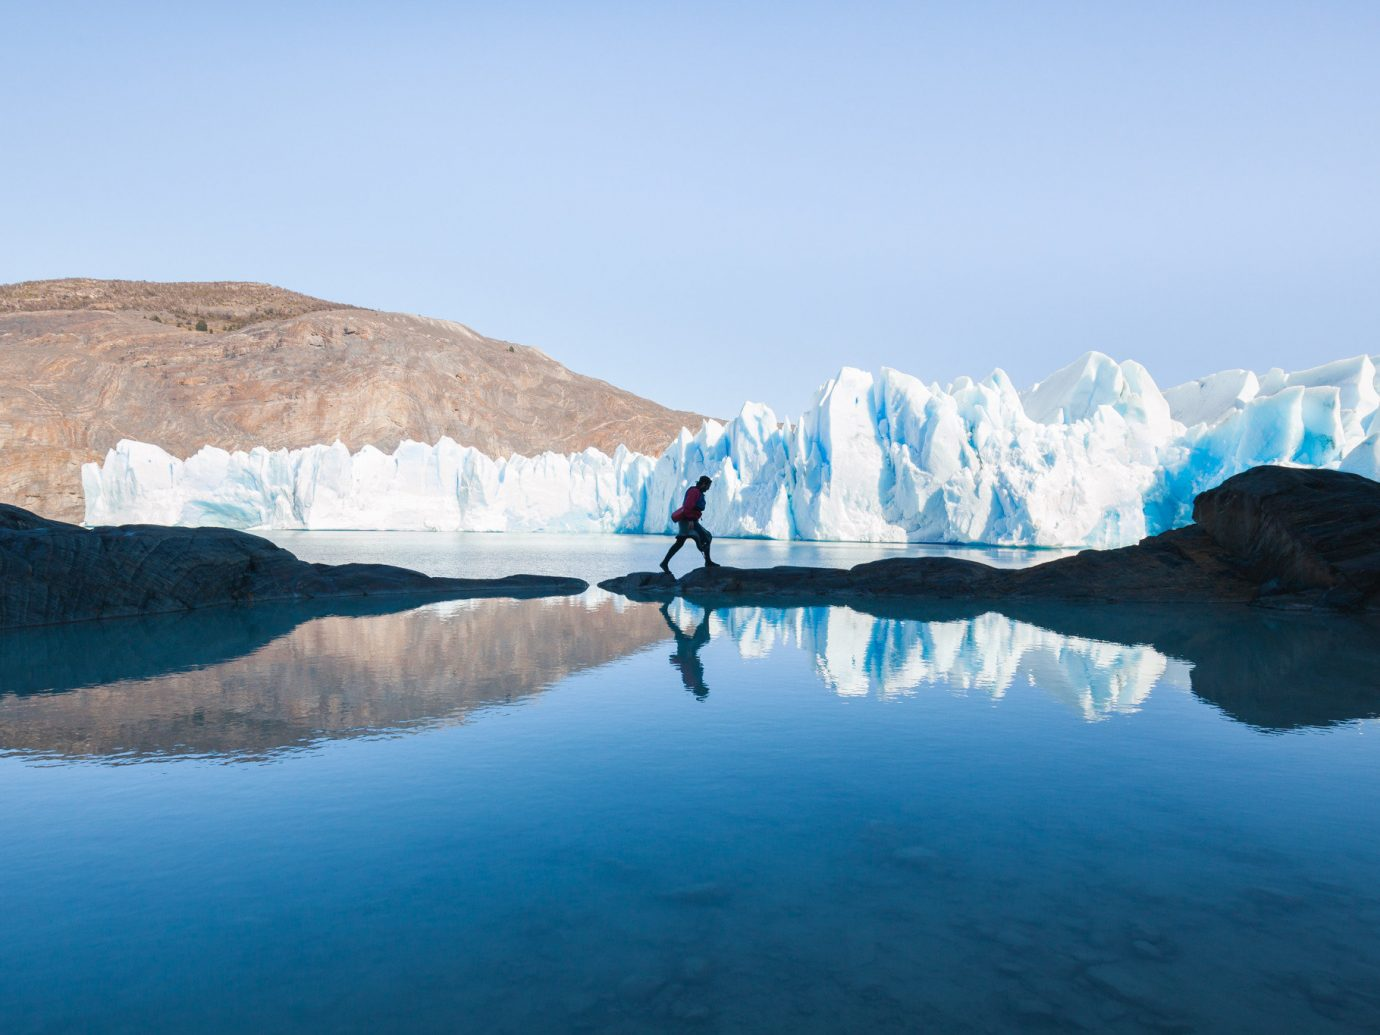 Jetsetter Guides Packing Tips Travel Tips Trip Ideas sky Nature mountain water outdoor landform reflection geographical feature Lake ice fjord loch arctic mountain range glacier glacial landform arctic ocean crater lake Sea reservoir clouds surrounded day